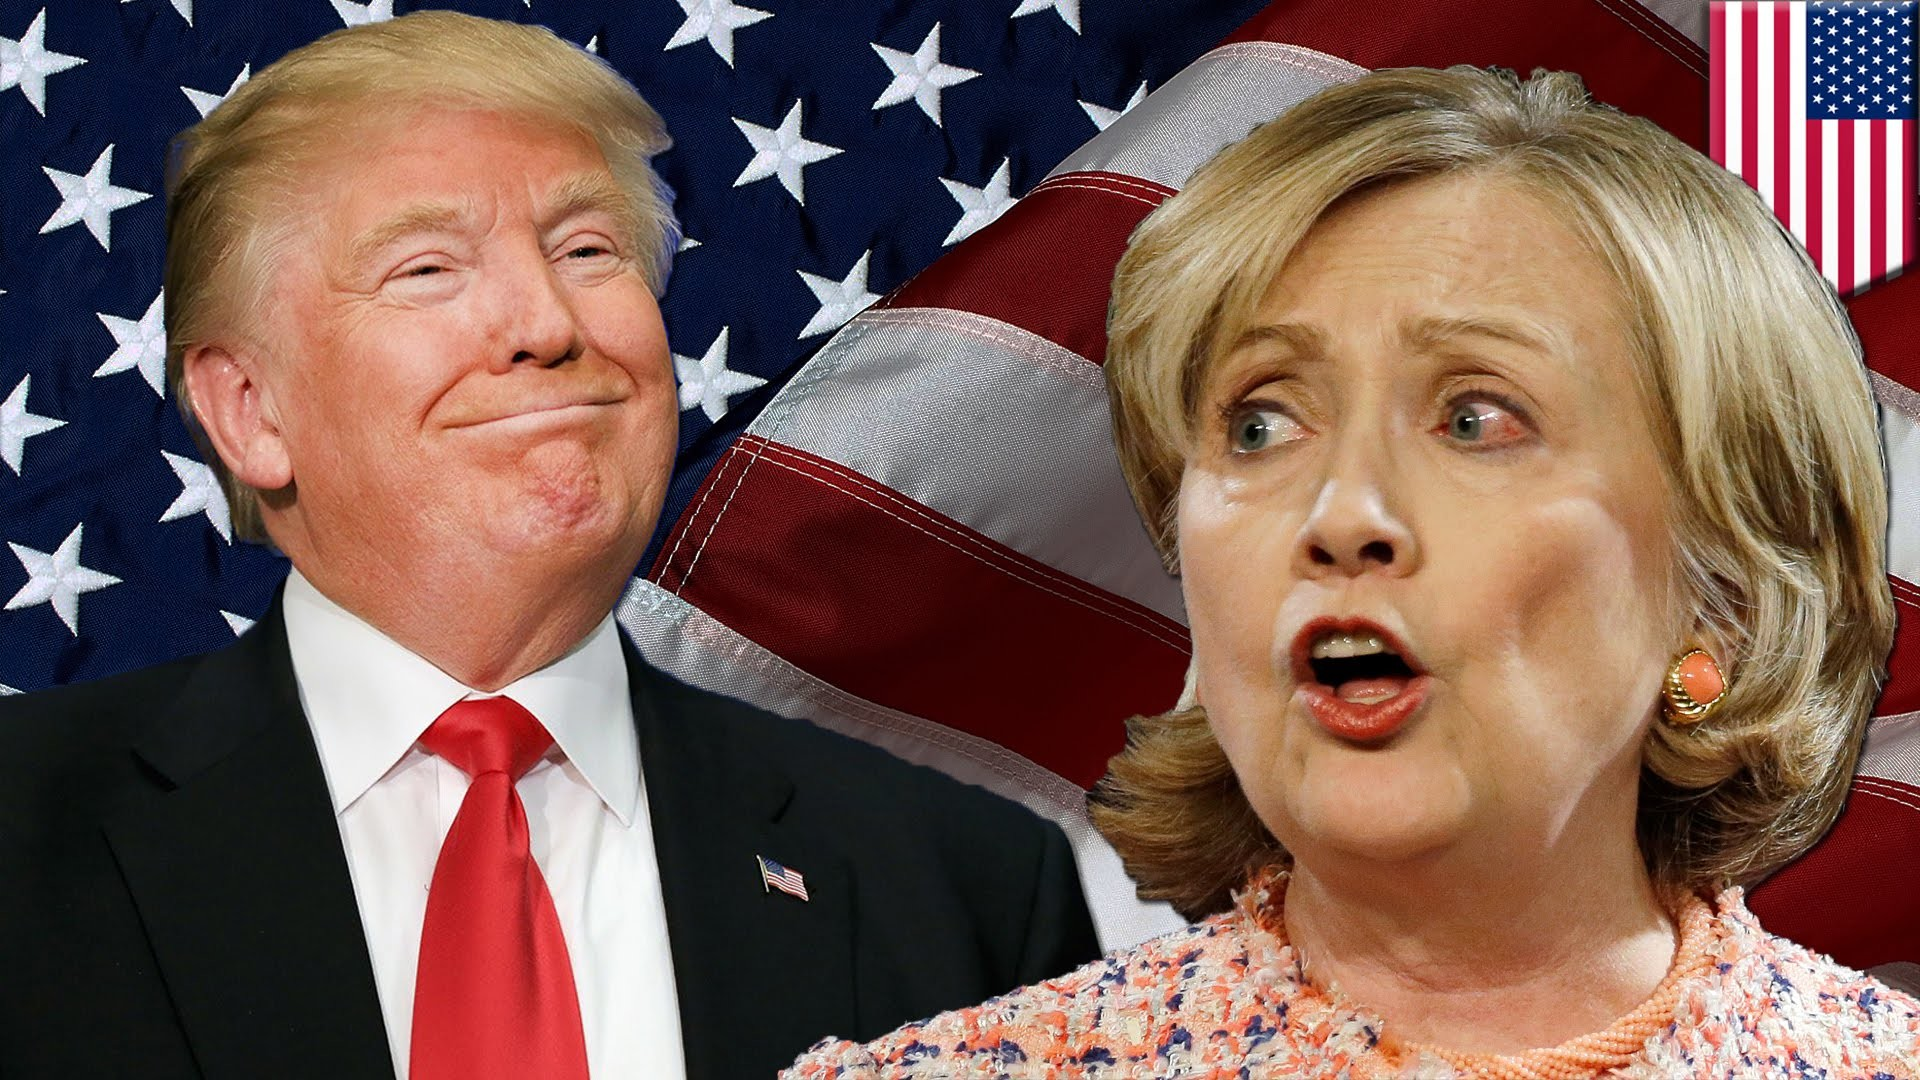 1920x1080 Trump vs Hillary: Trump and Clinton are neck-and-neck in the battleground  states - YouTube